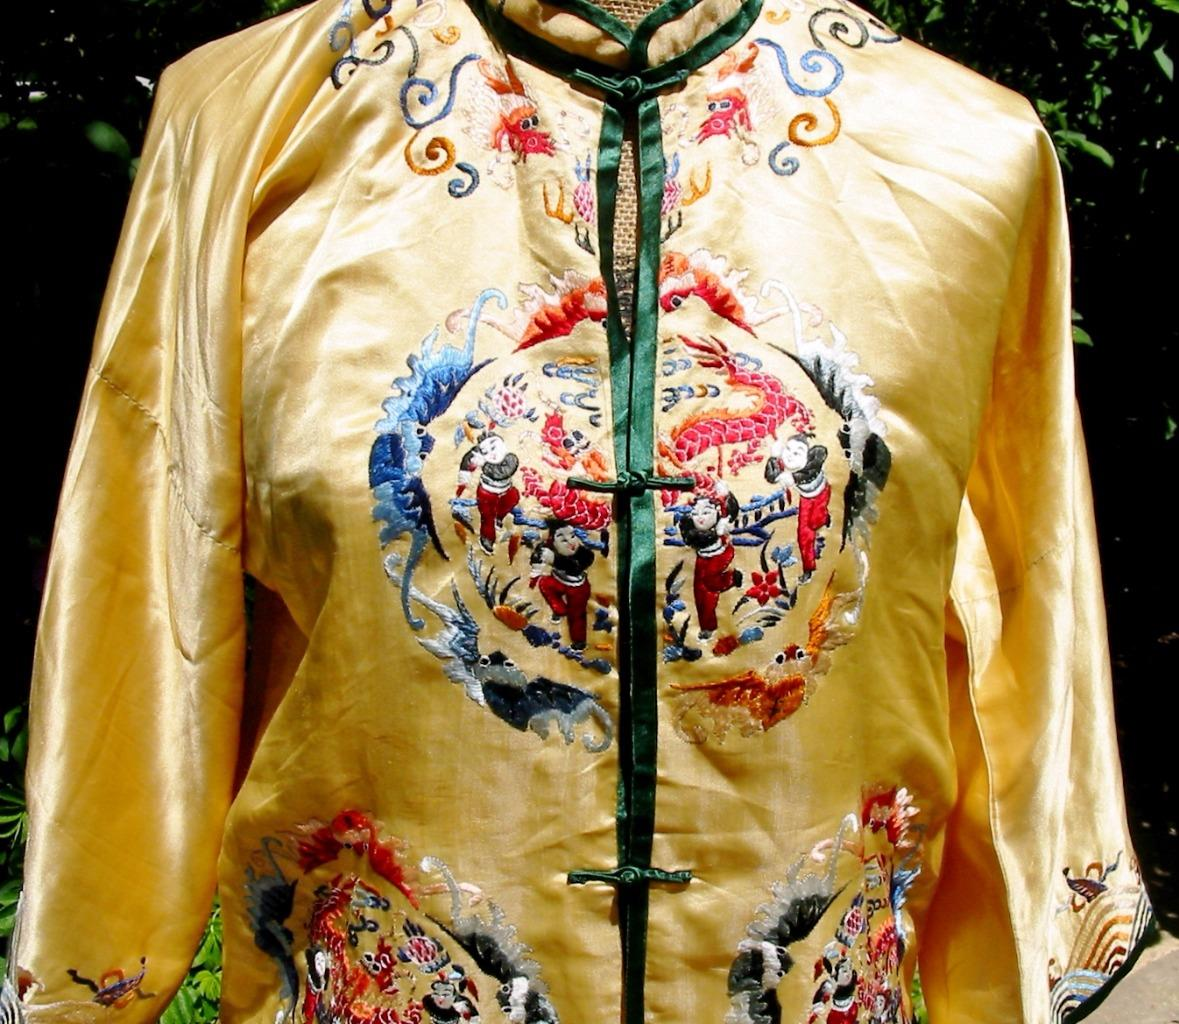 f655fef2aa Lovely Vintage Chinese Embroidered Yellow Robe Jacket Pants Bats Dragon  Festival 4 4 of 12 ...